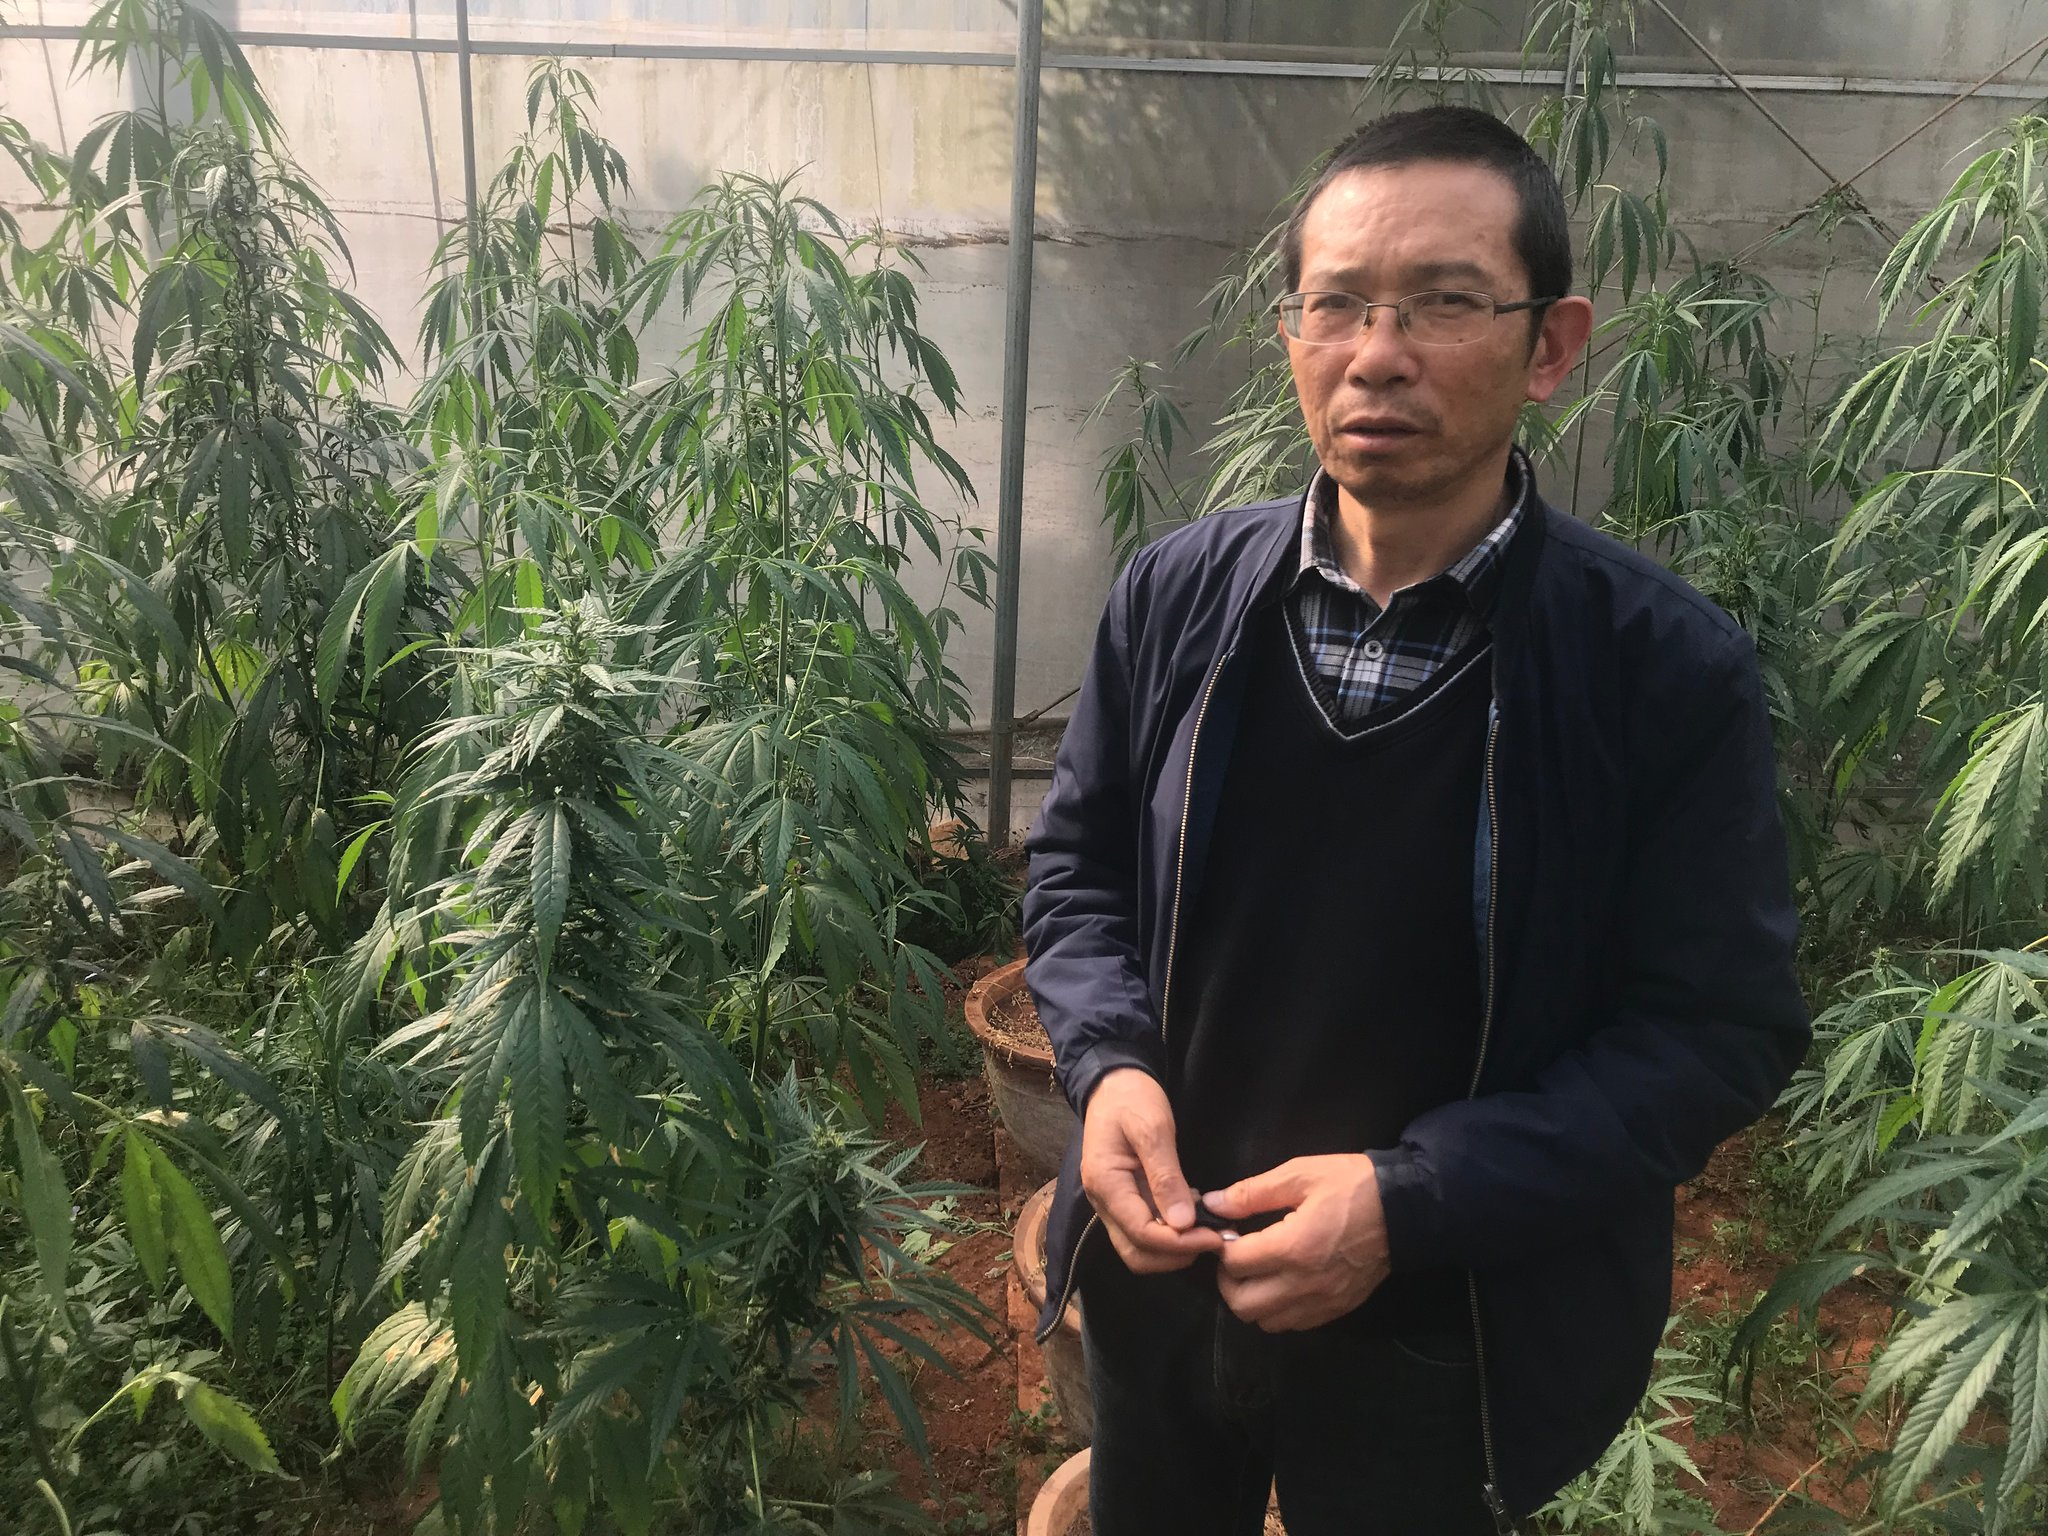 China has cultivated cannabis for thousands of years. Yang Ming, a leading expert on hemp, said the plant's seeds were traditionally formed into a ball and used to treat constipation.CreditSteven Lee Myers/The New York Times